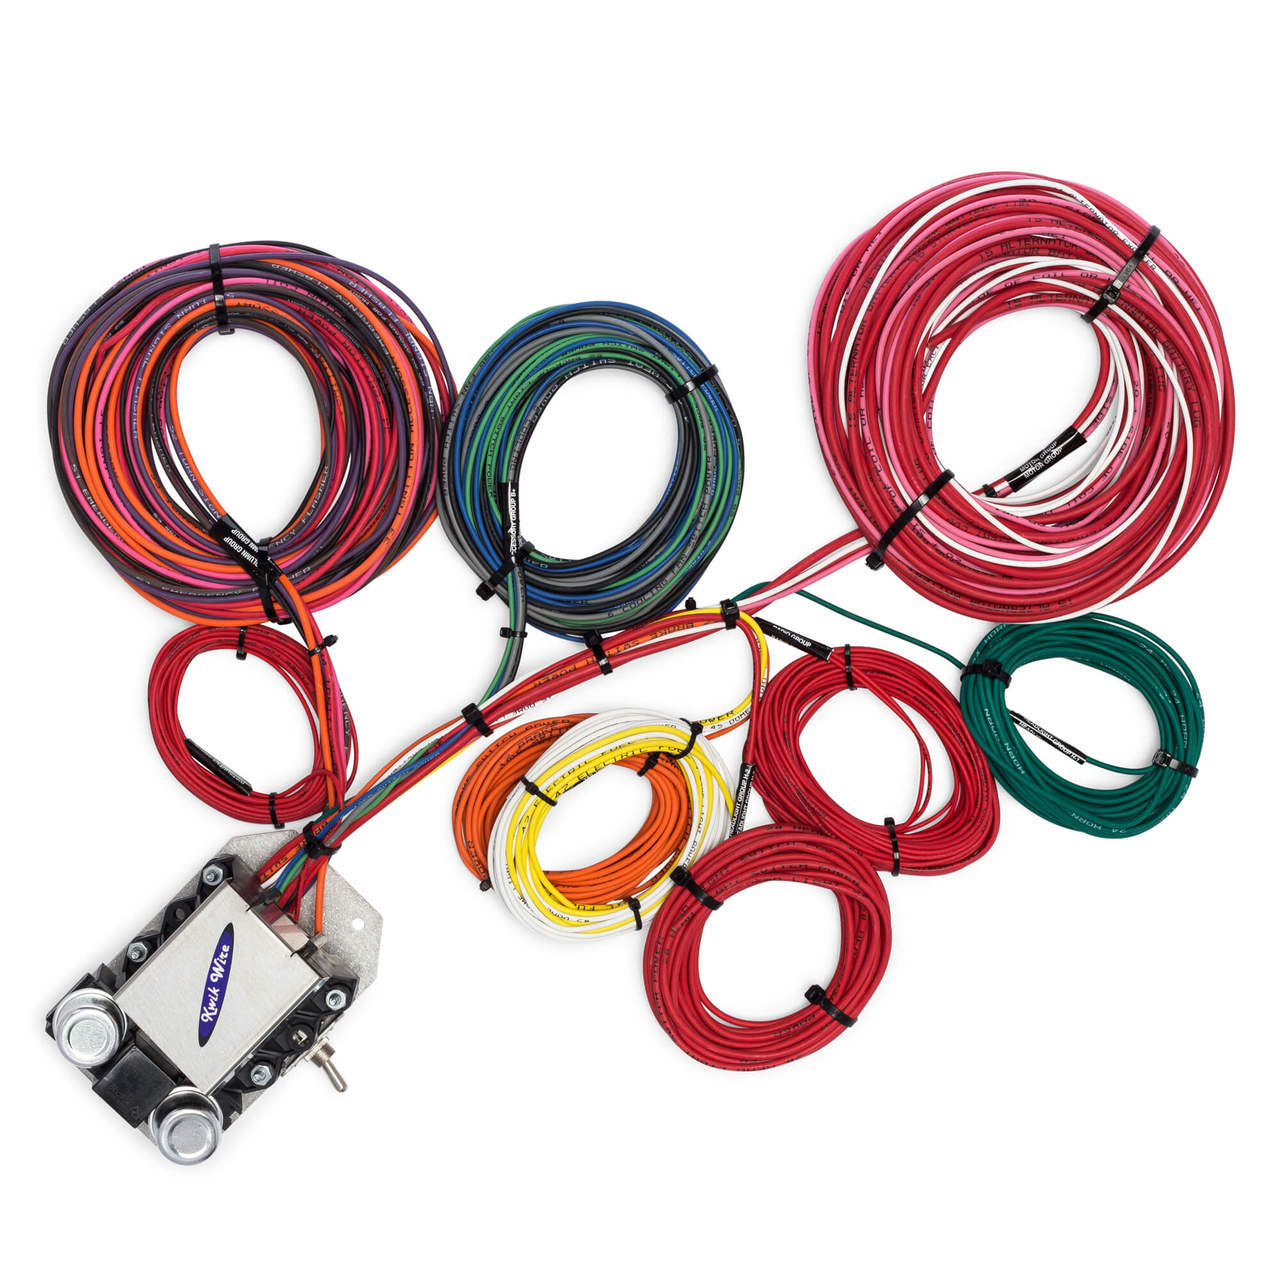 hight resolution of 14 circuit trunk mount wire harness kwikwire com electrify your ride kwik wiring harness kwik wiring harness